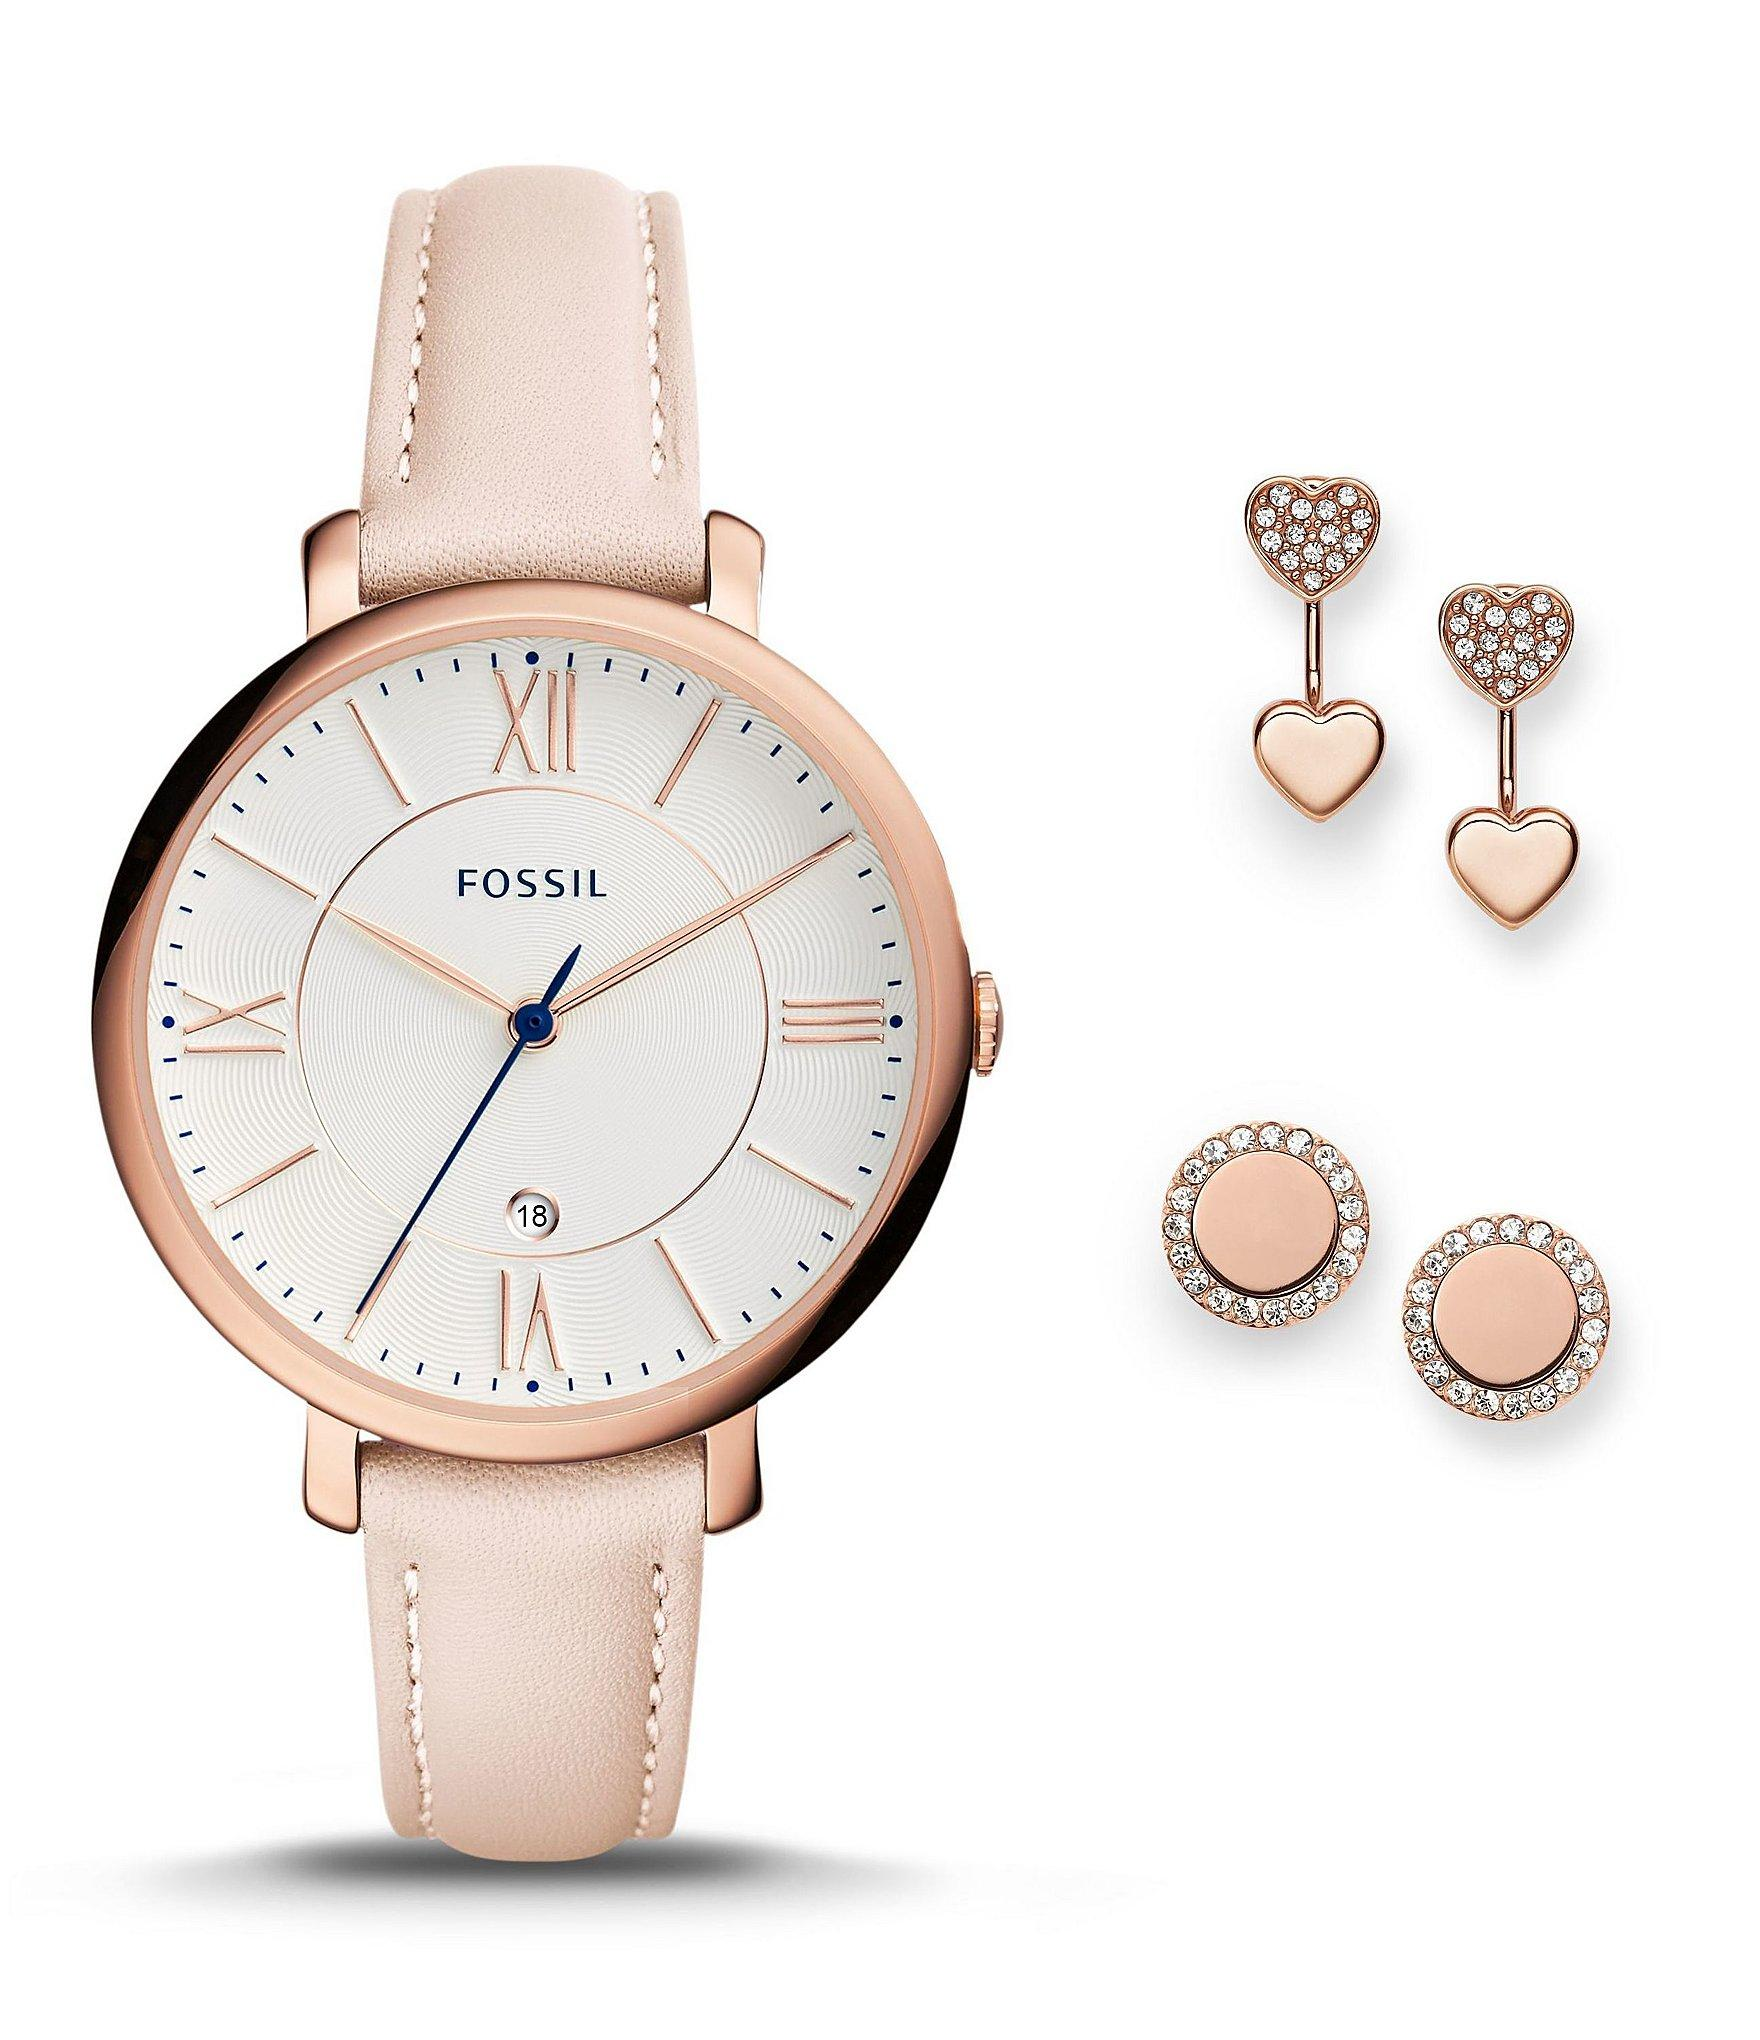 Fossil Women's Jacqueline Pink Leather Strap Watch 36mm ...